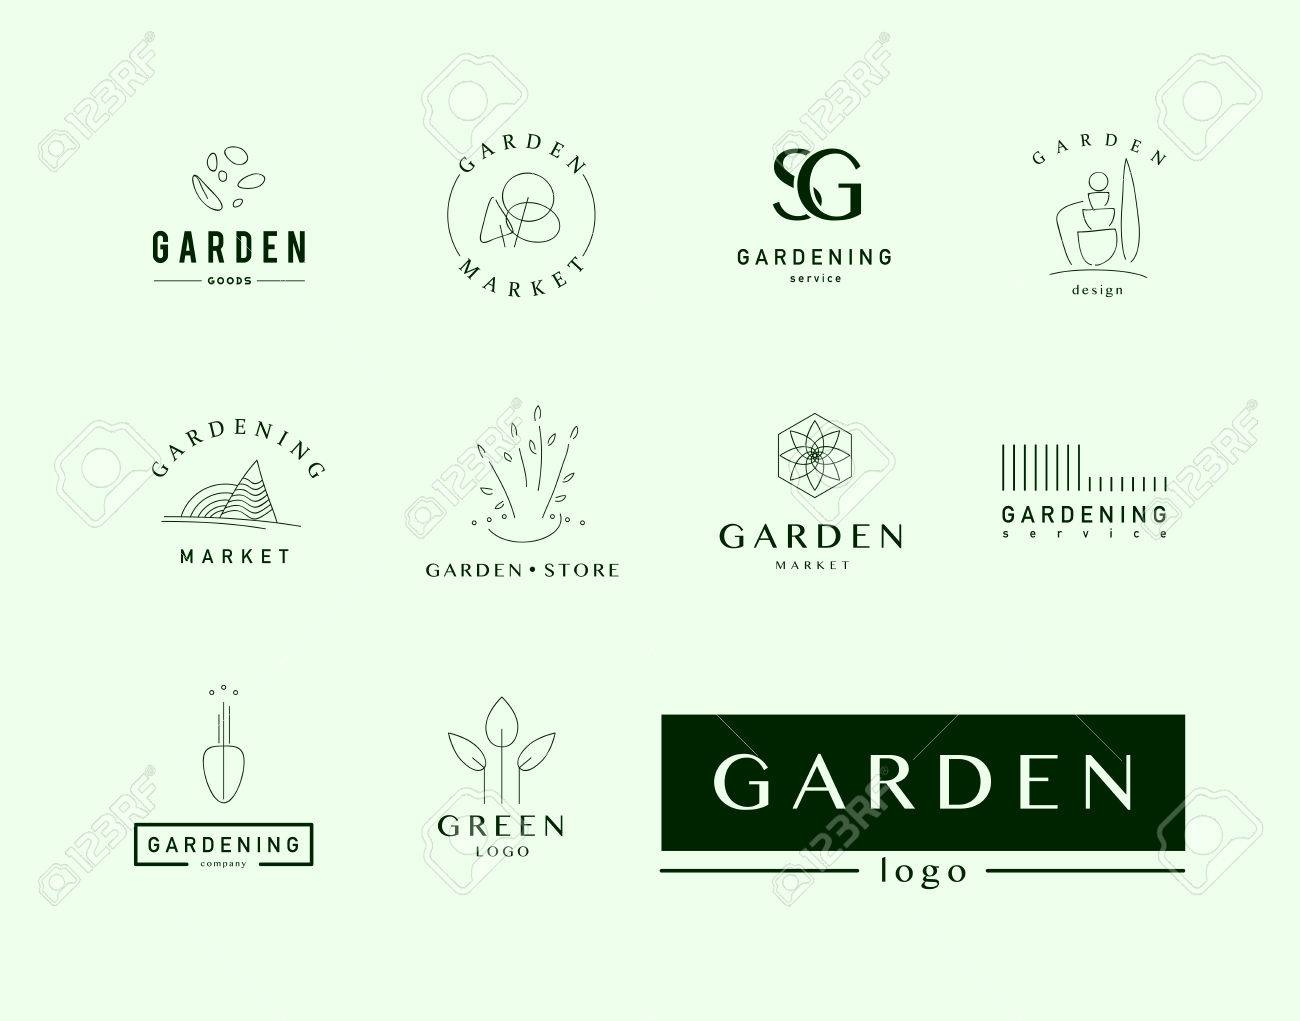 Beau Collection Of Vector Flat Elegant Logo Template For Gardening Companies.  Gardening Service Brand Mark Graphic